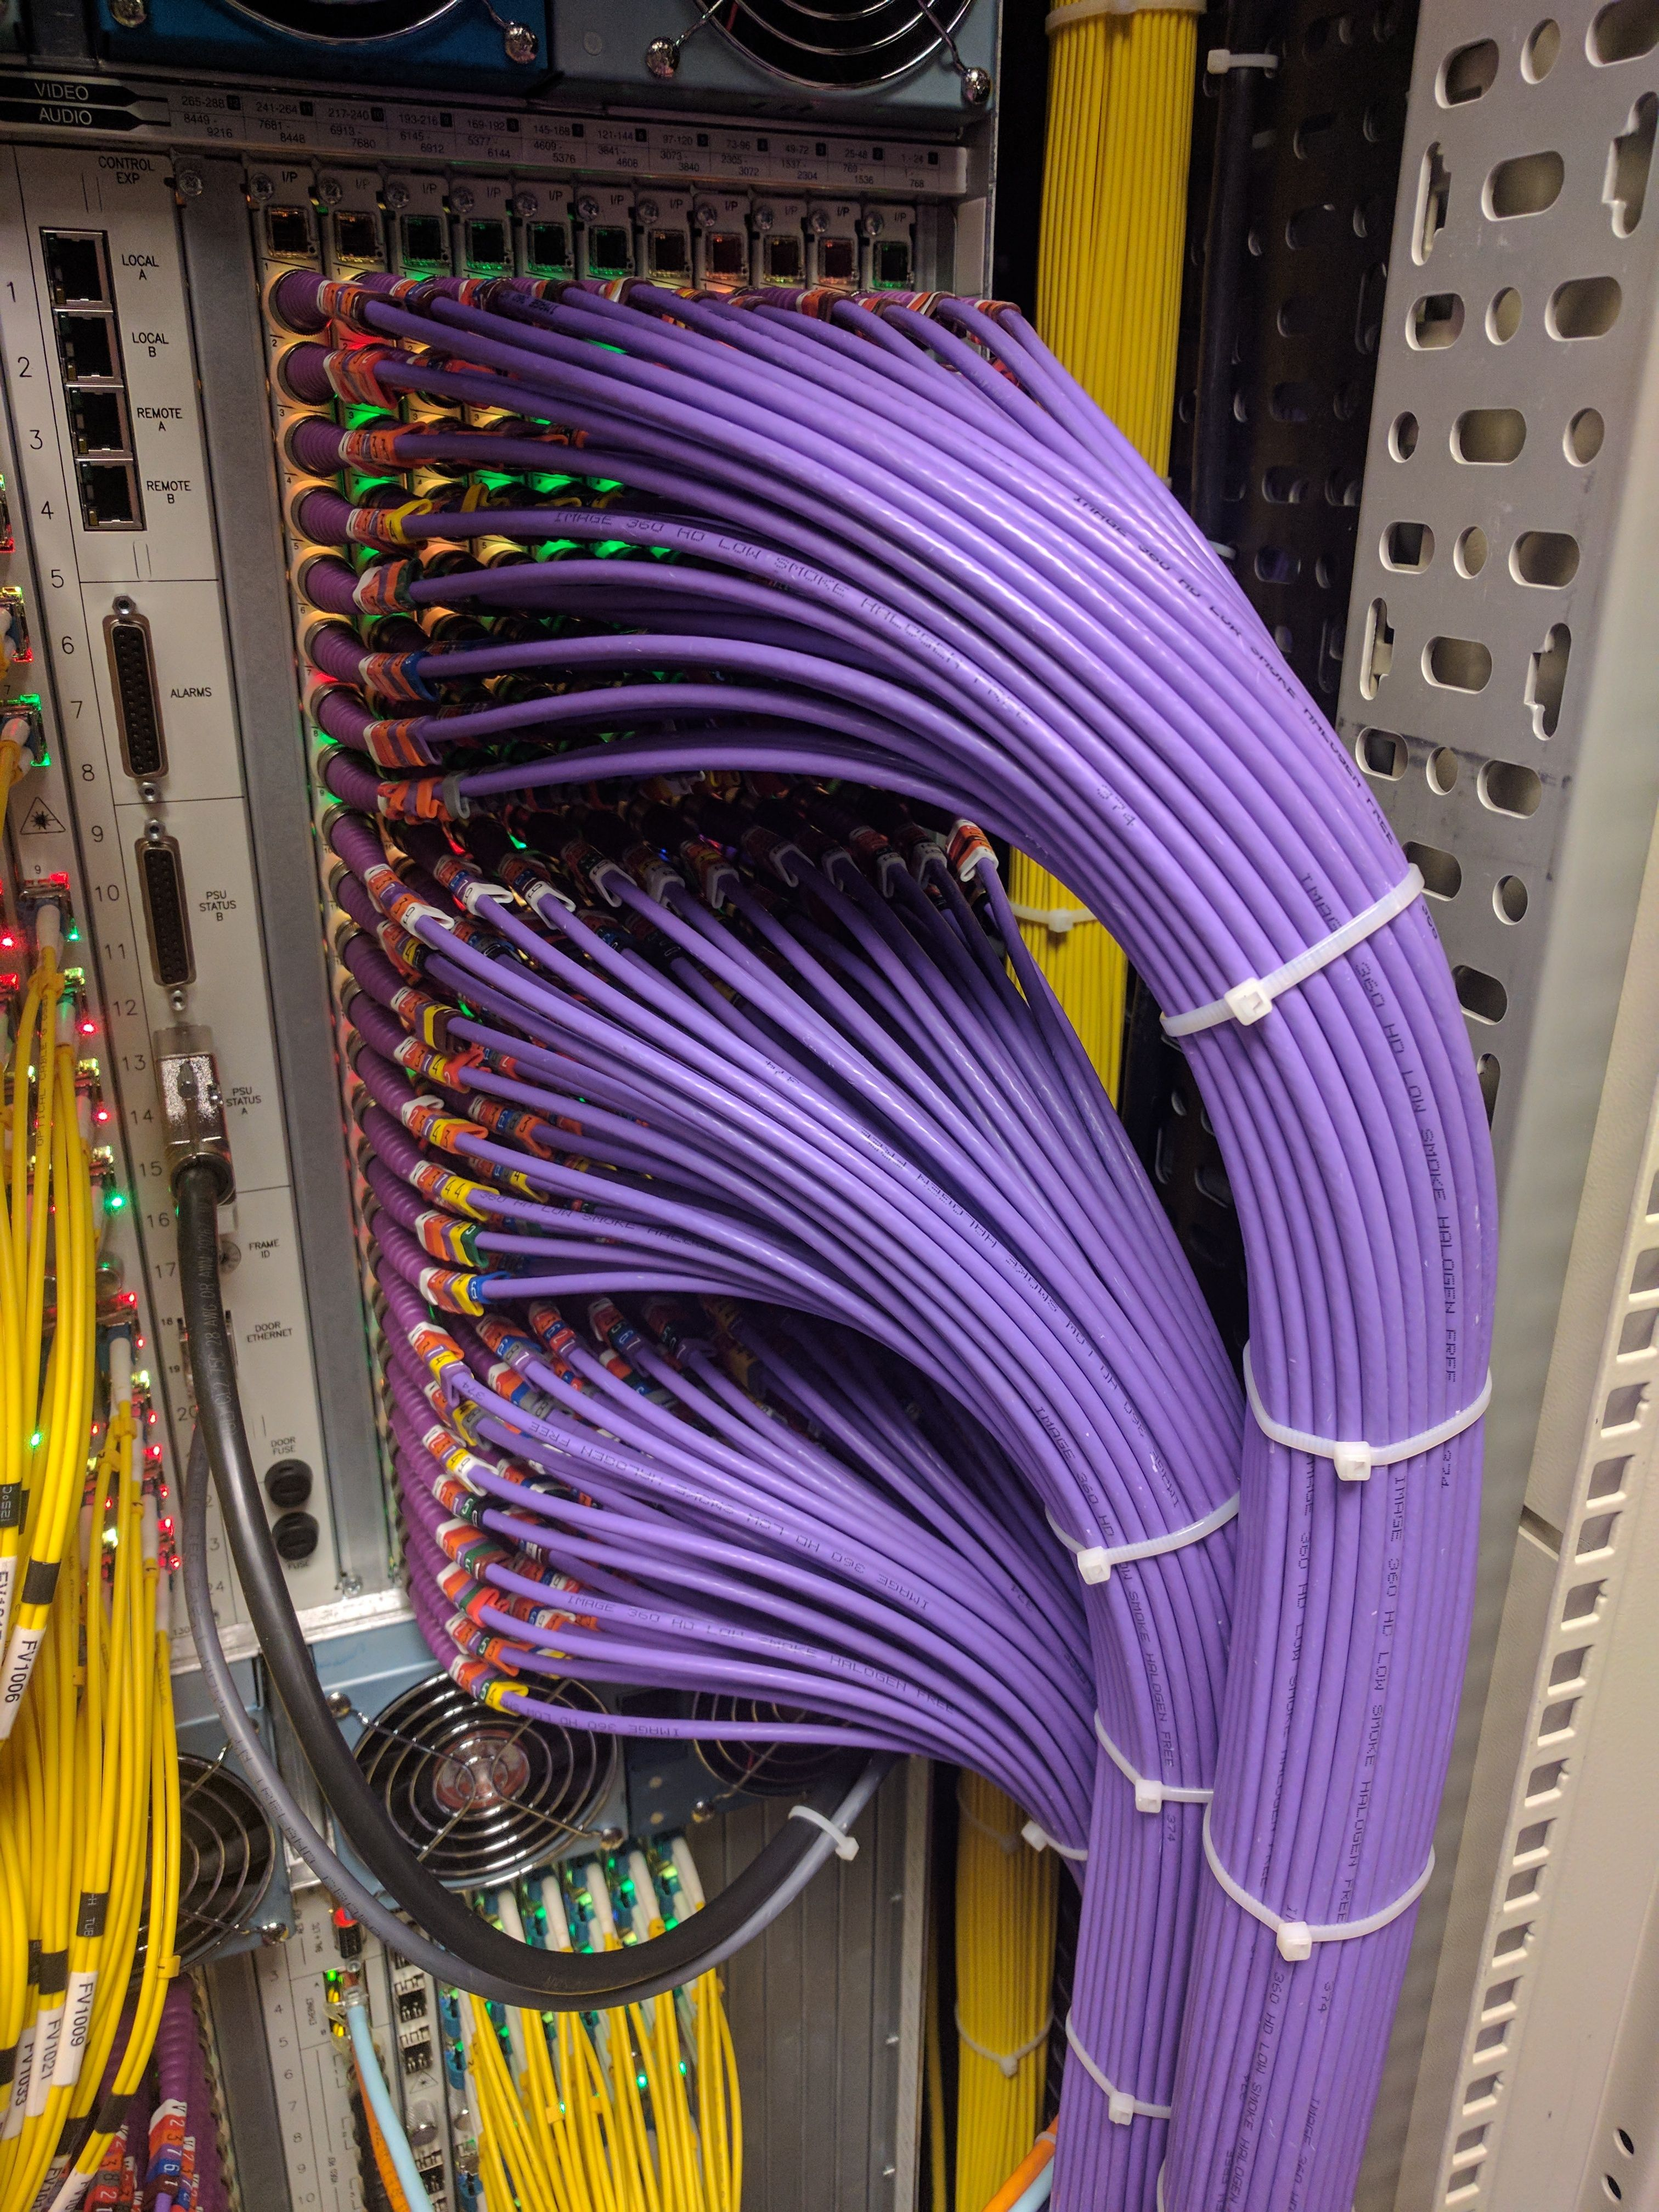 6912 wiring diagram for pc broadcasting  with images  structured cabling  data center  structured cabling